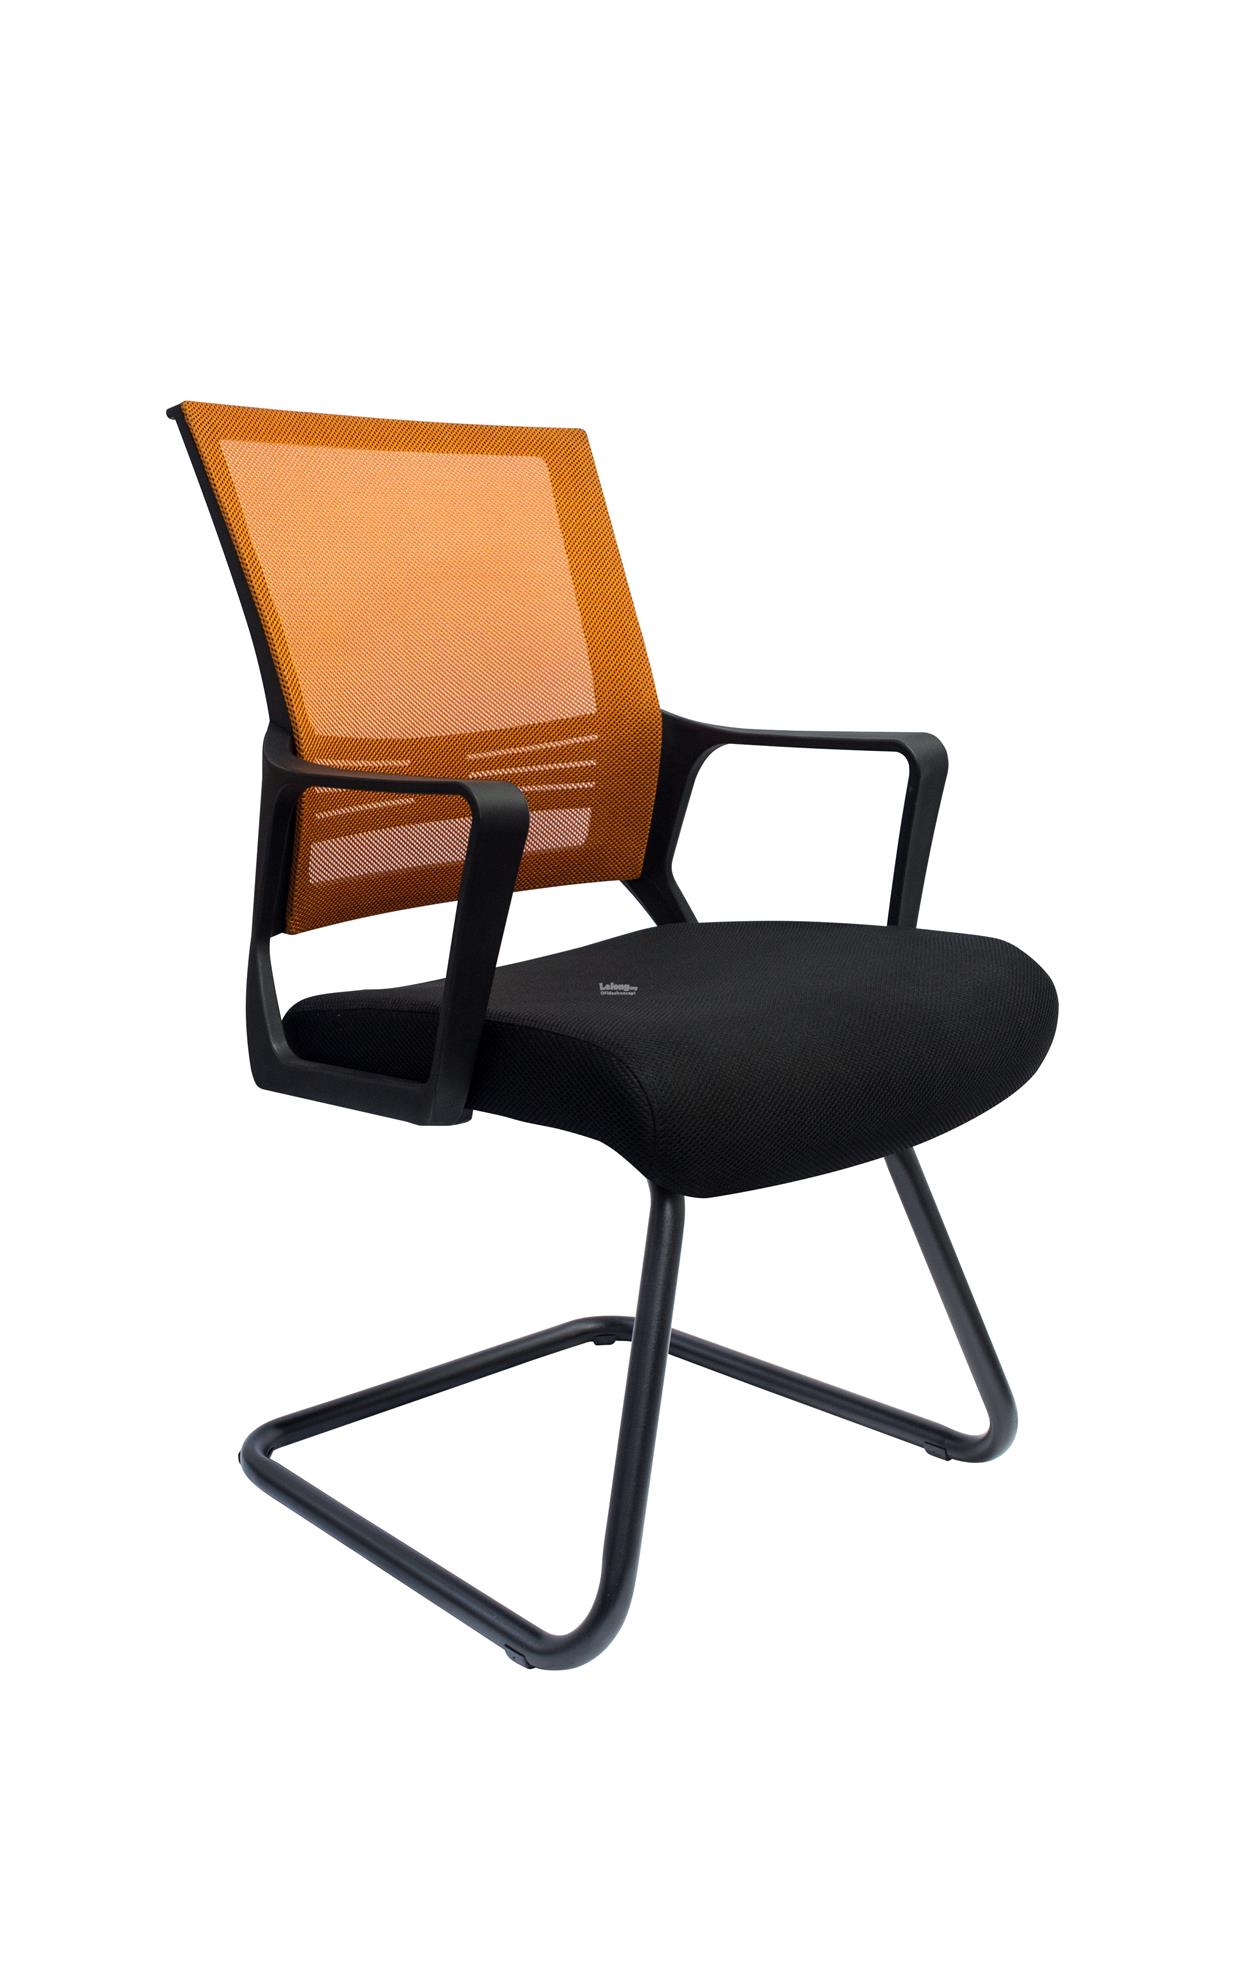 Budget Visitor Mesh Home & Office Chairs (Netting Chairs)